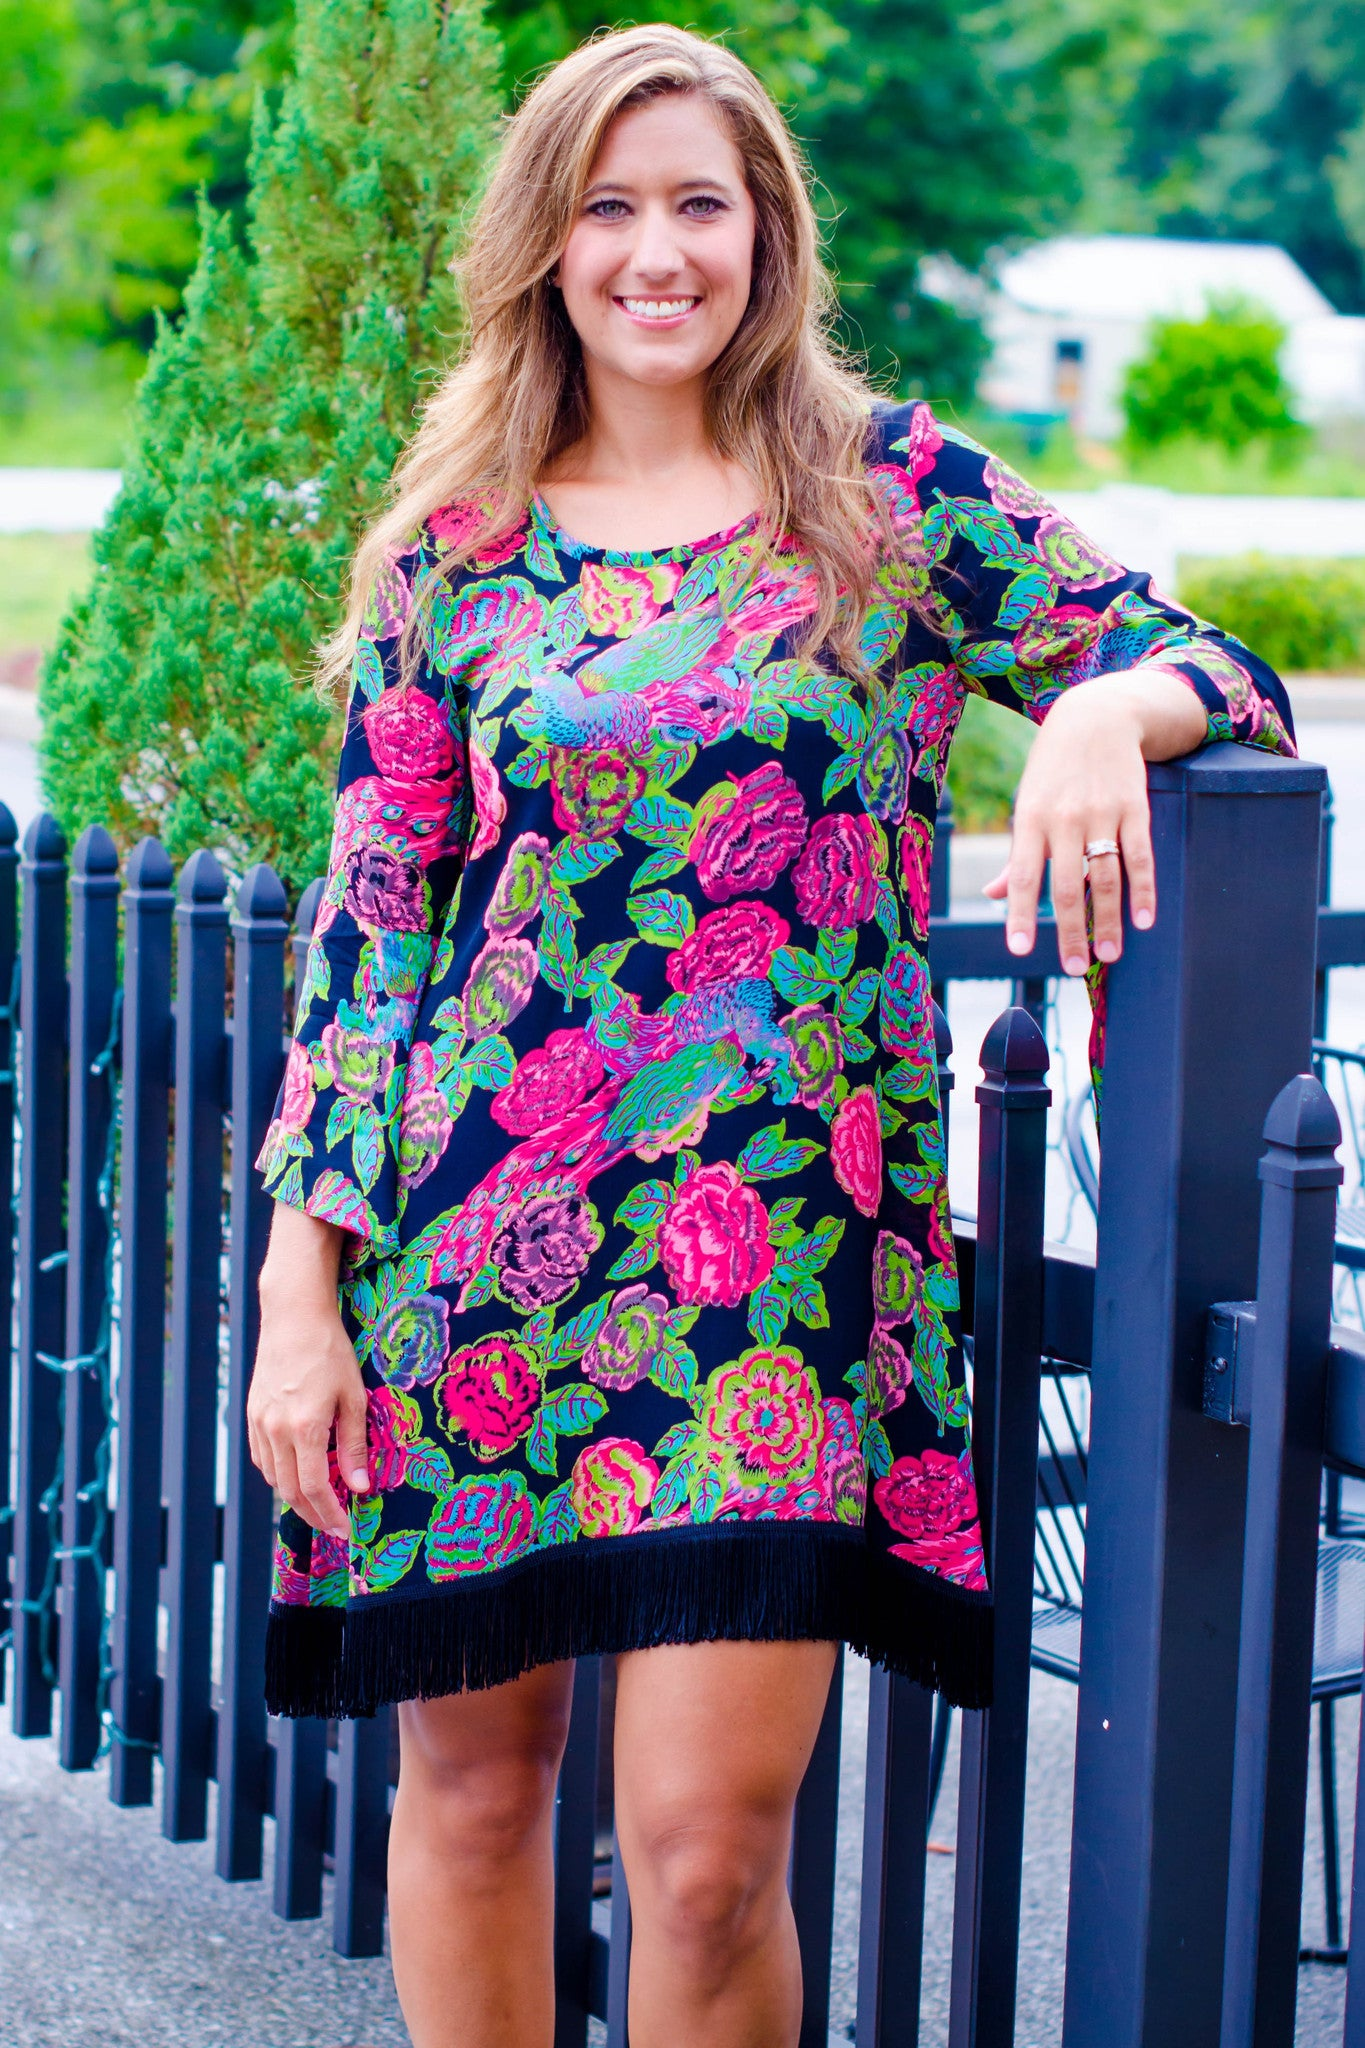 Uncle Frank: Meagan Dress, Black Floral